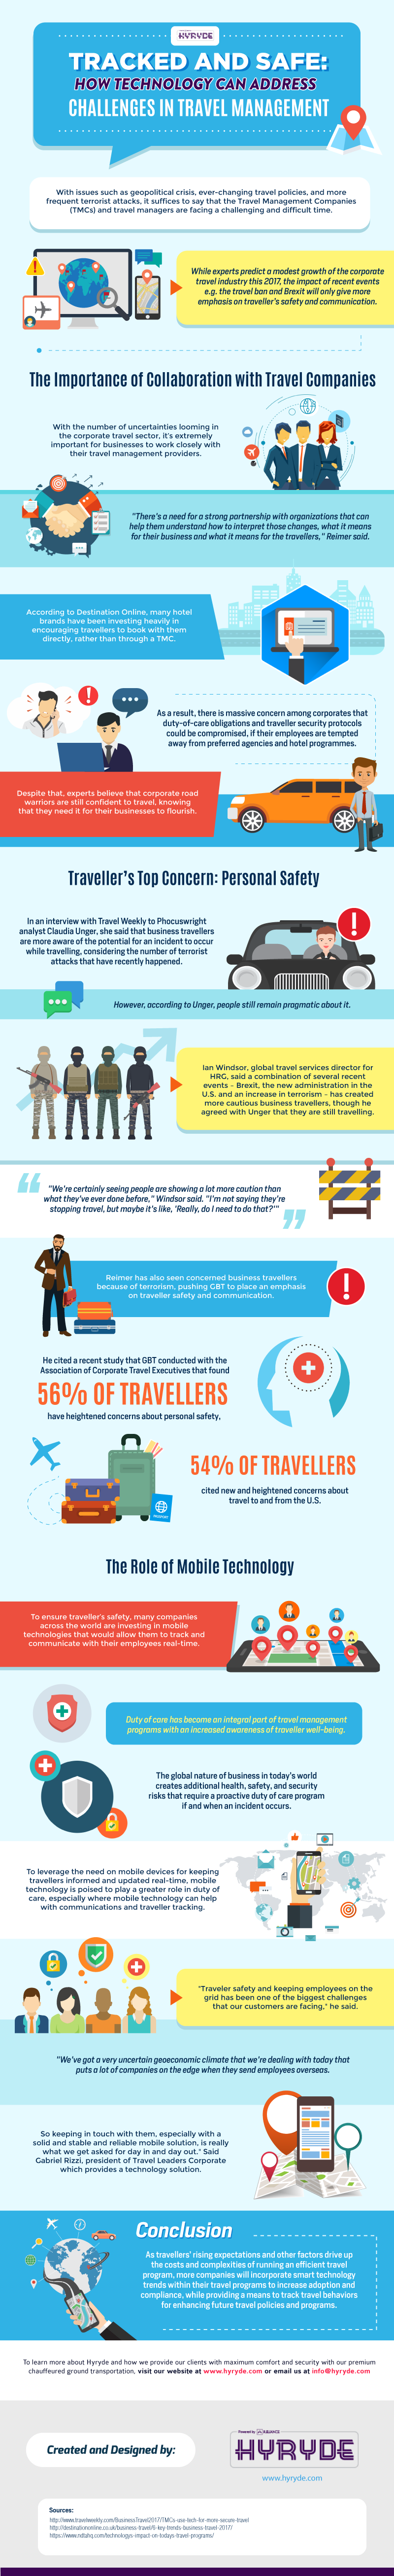 How Technology Can Ease Travel Challenges - Infographic